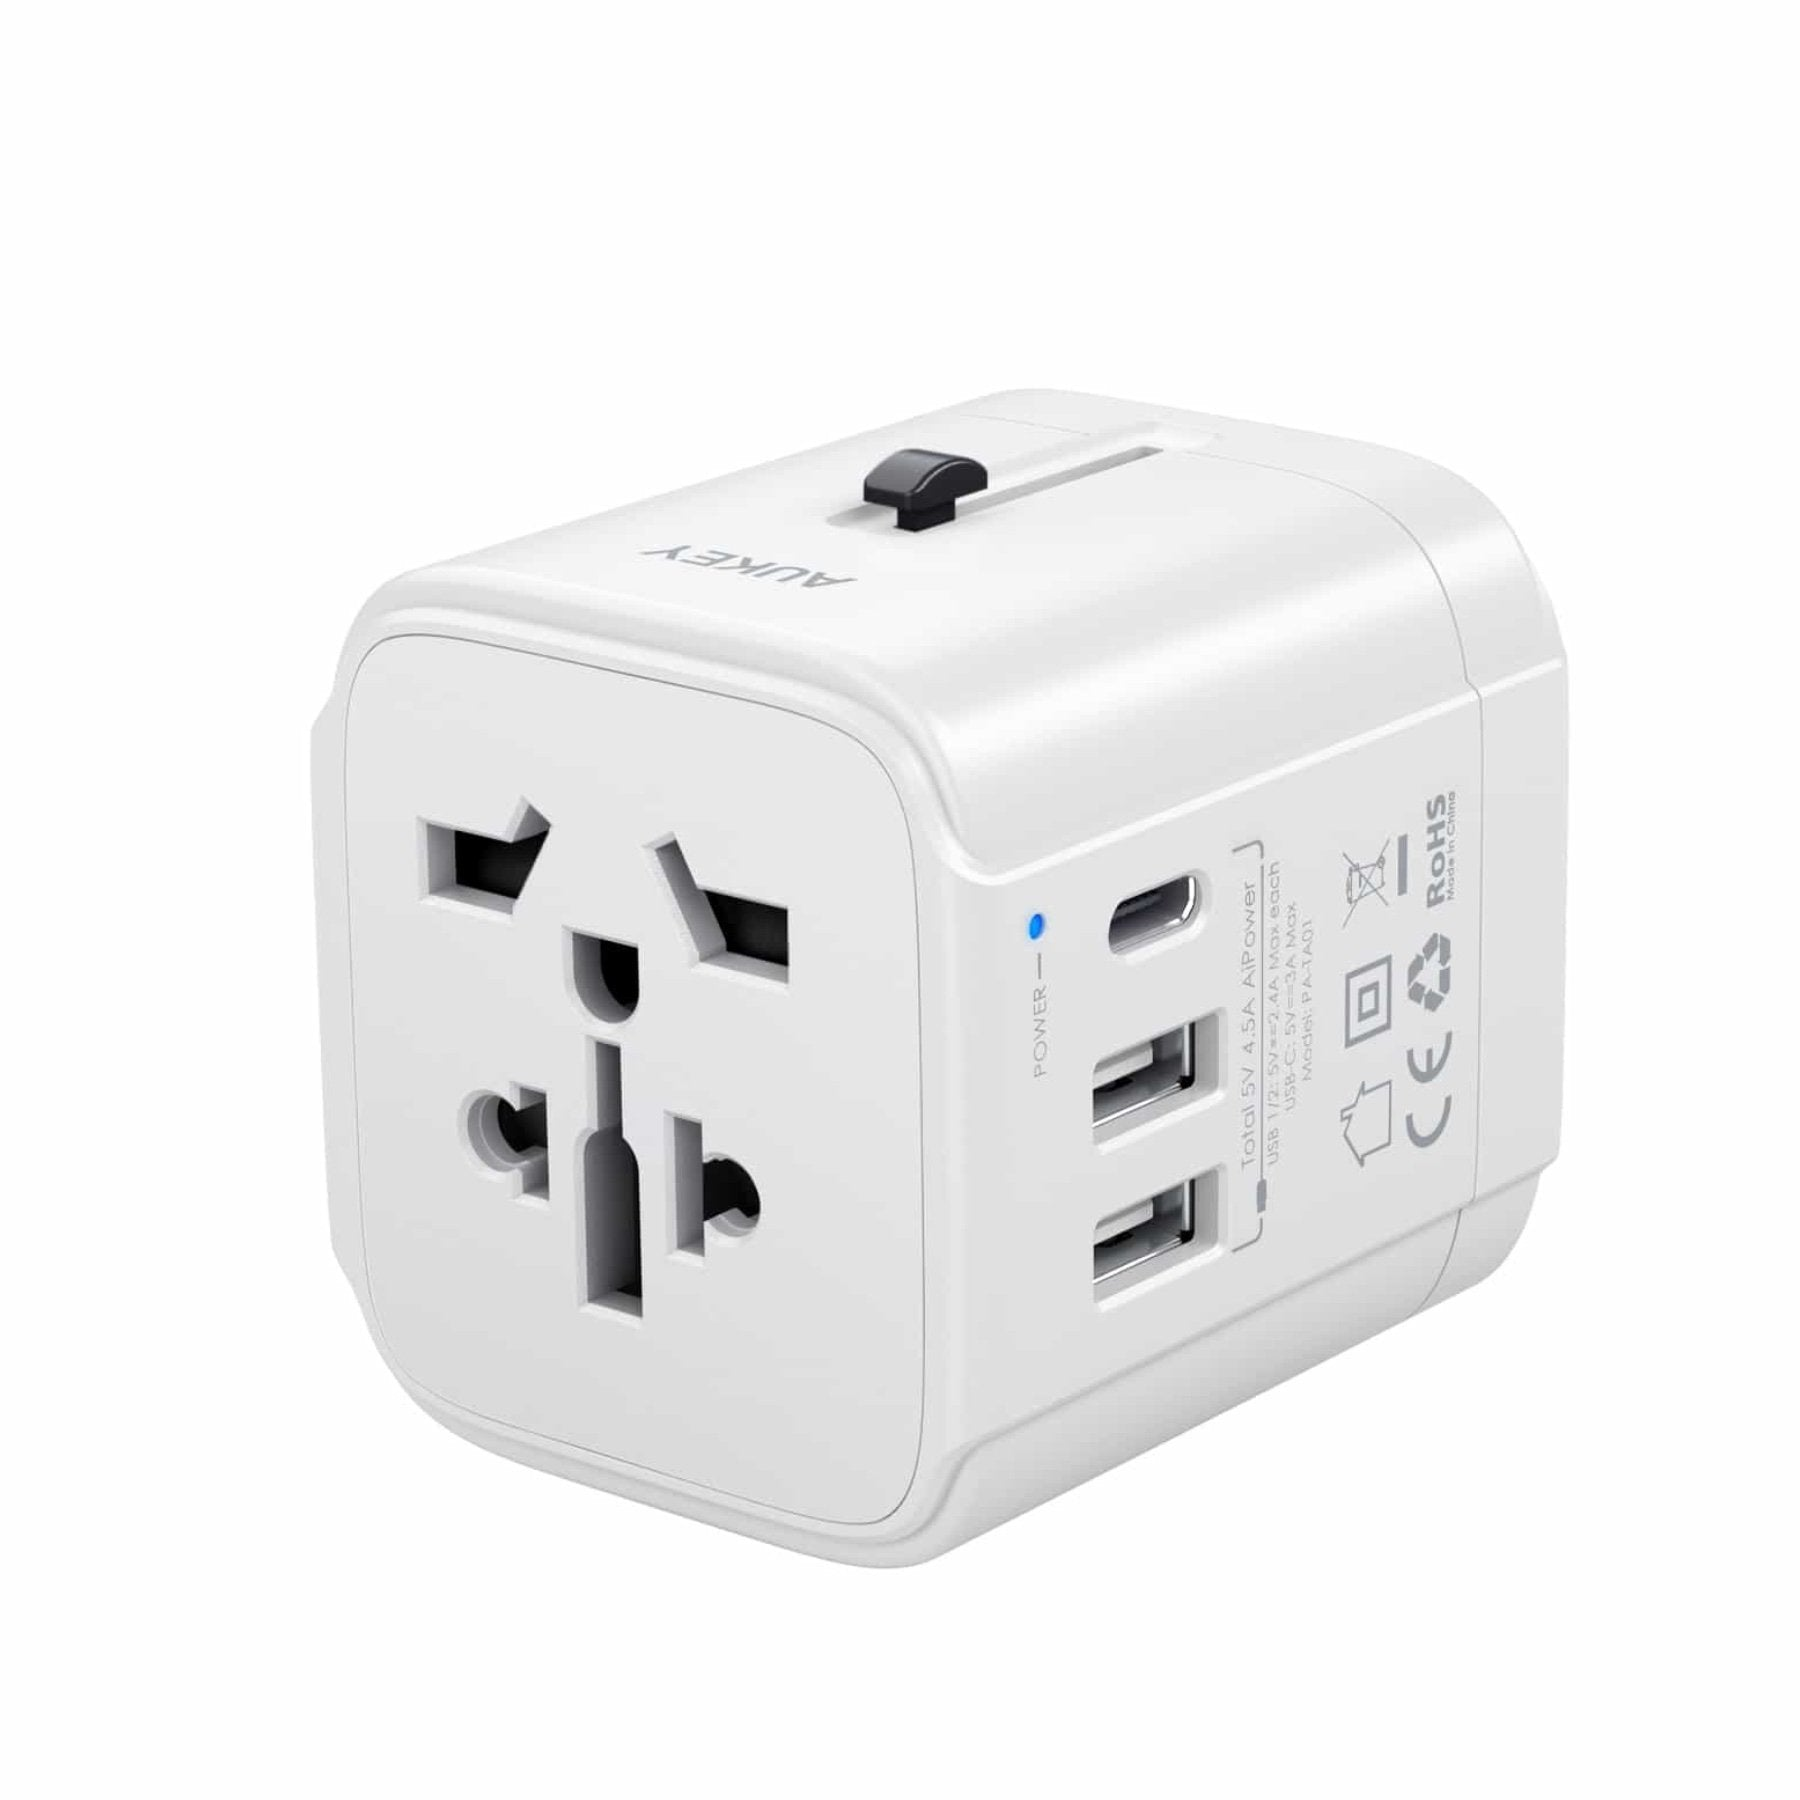 Universal Travel Adapter With USB-C and USB-A Ports | PA-TA01 | Black & White | Aukey supertech.pk